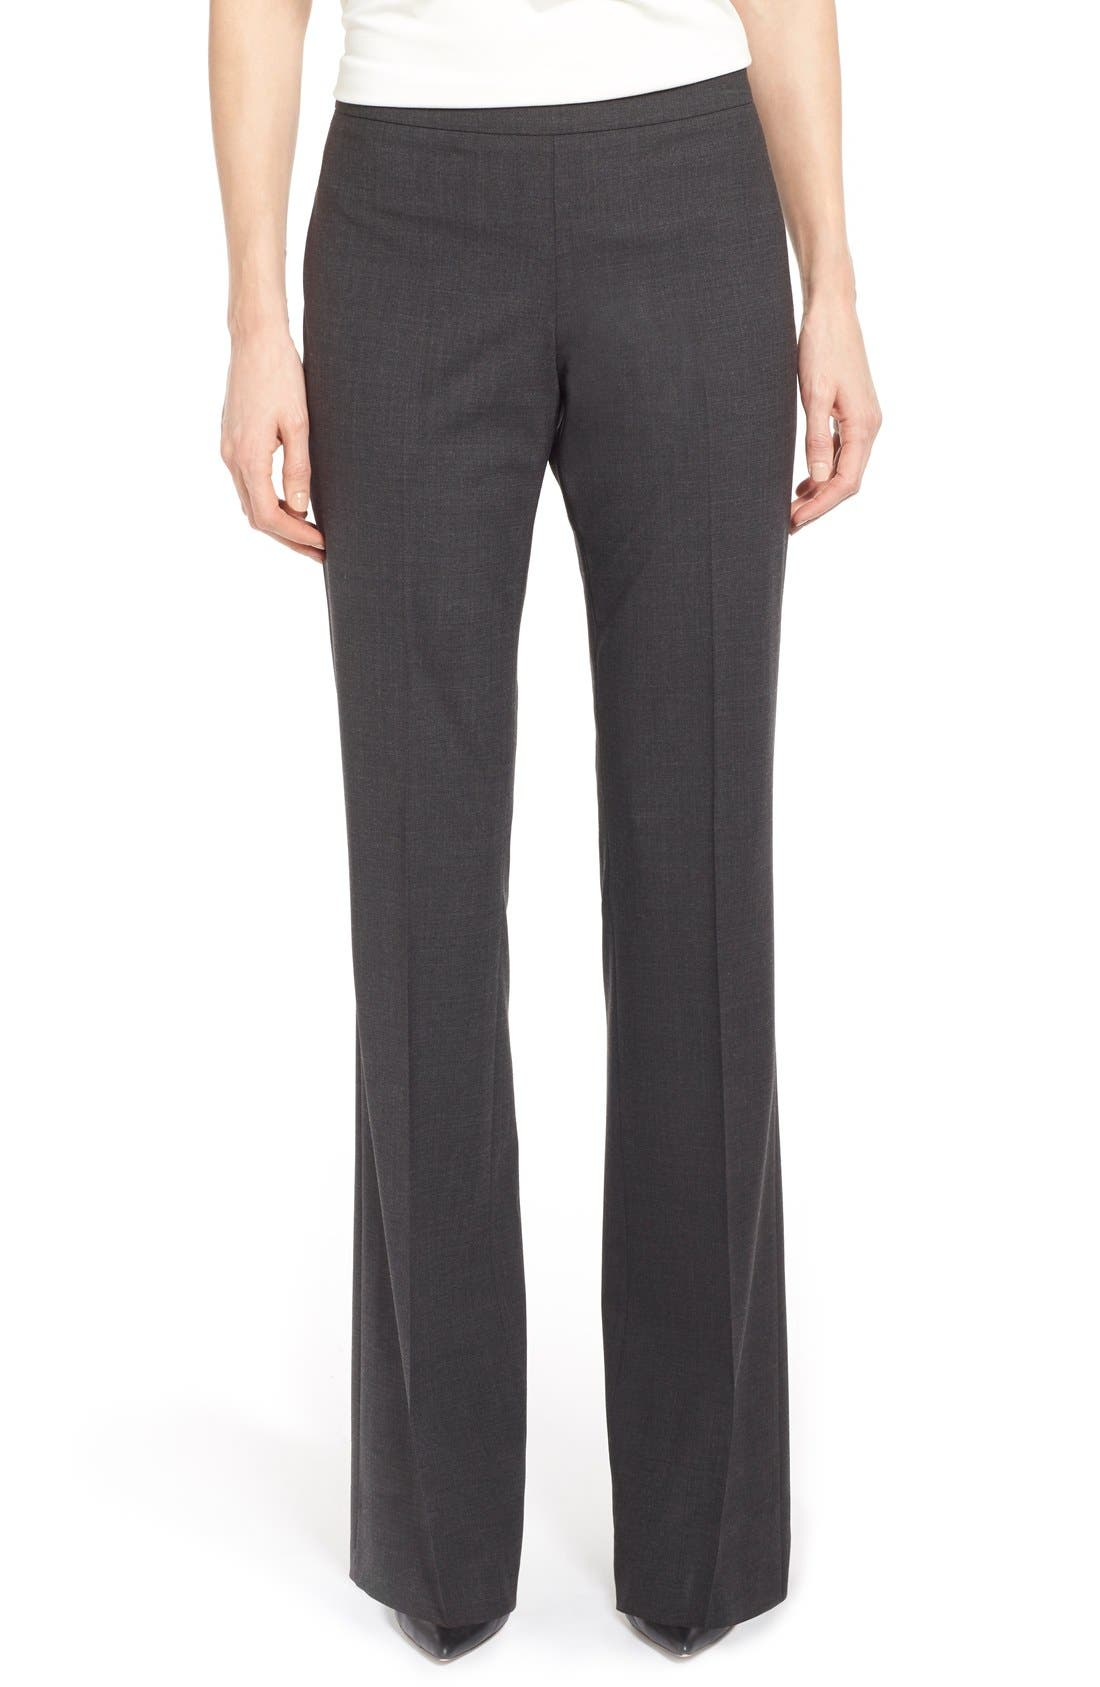 Alternate Image 1 Selected - BOSS Tulea Bootcut Stretch Wool Suit Trousers (Regular & Petite)